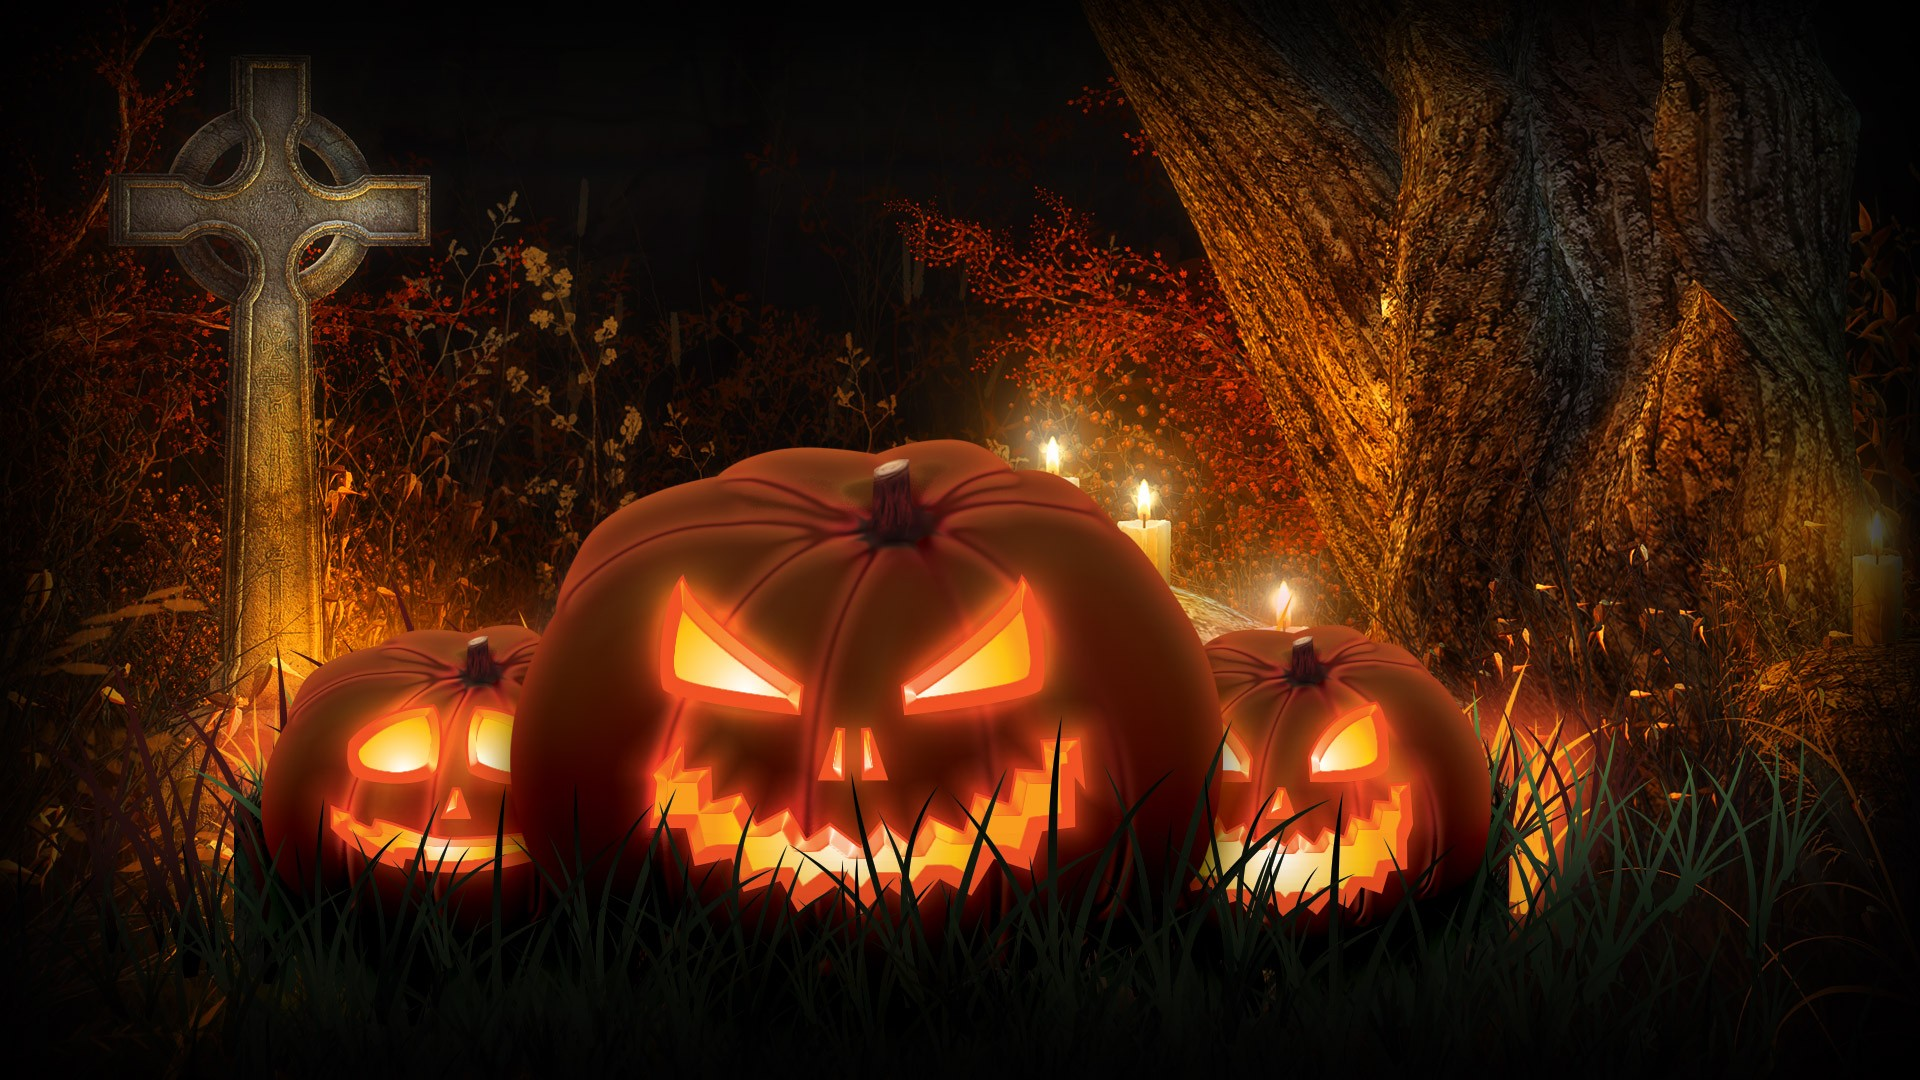 Scary Halloween Pumpkin Images